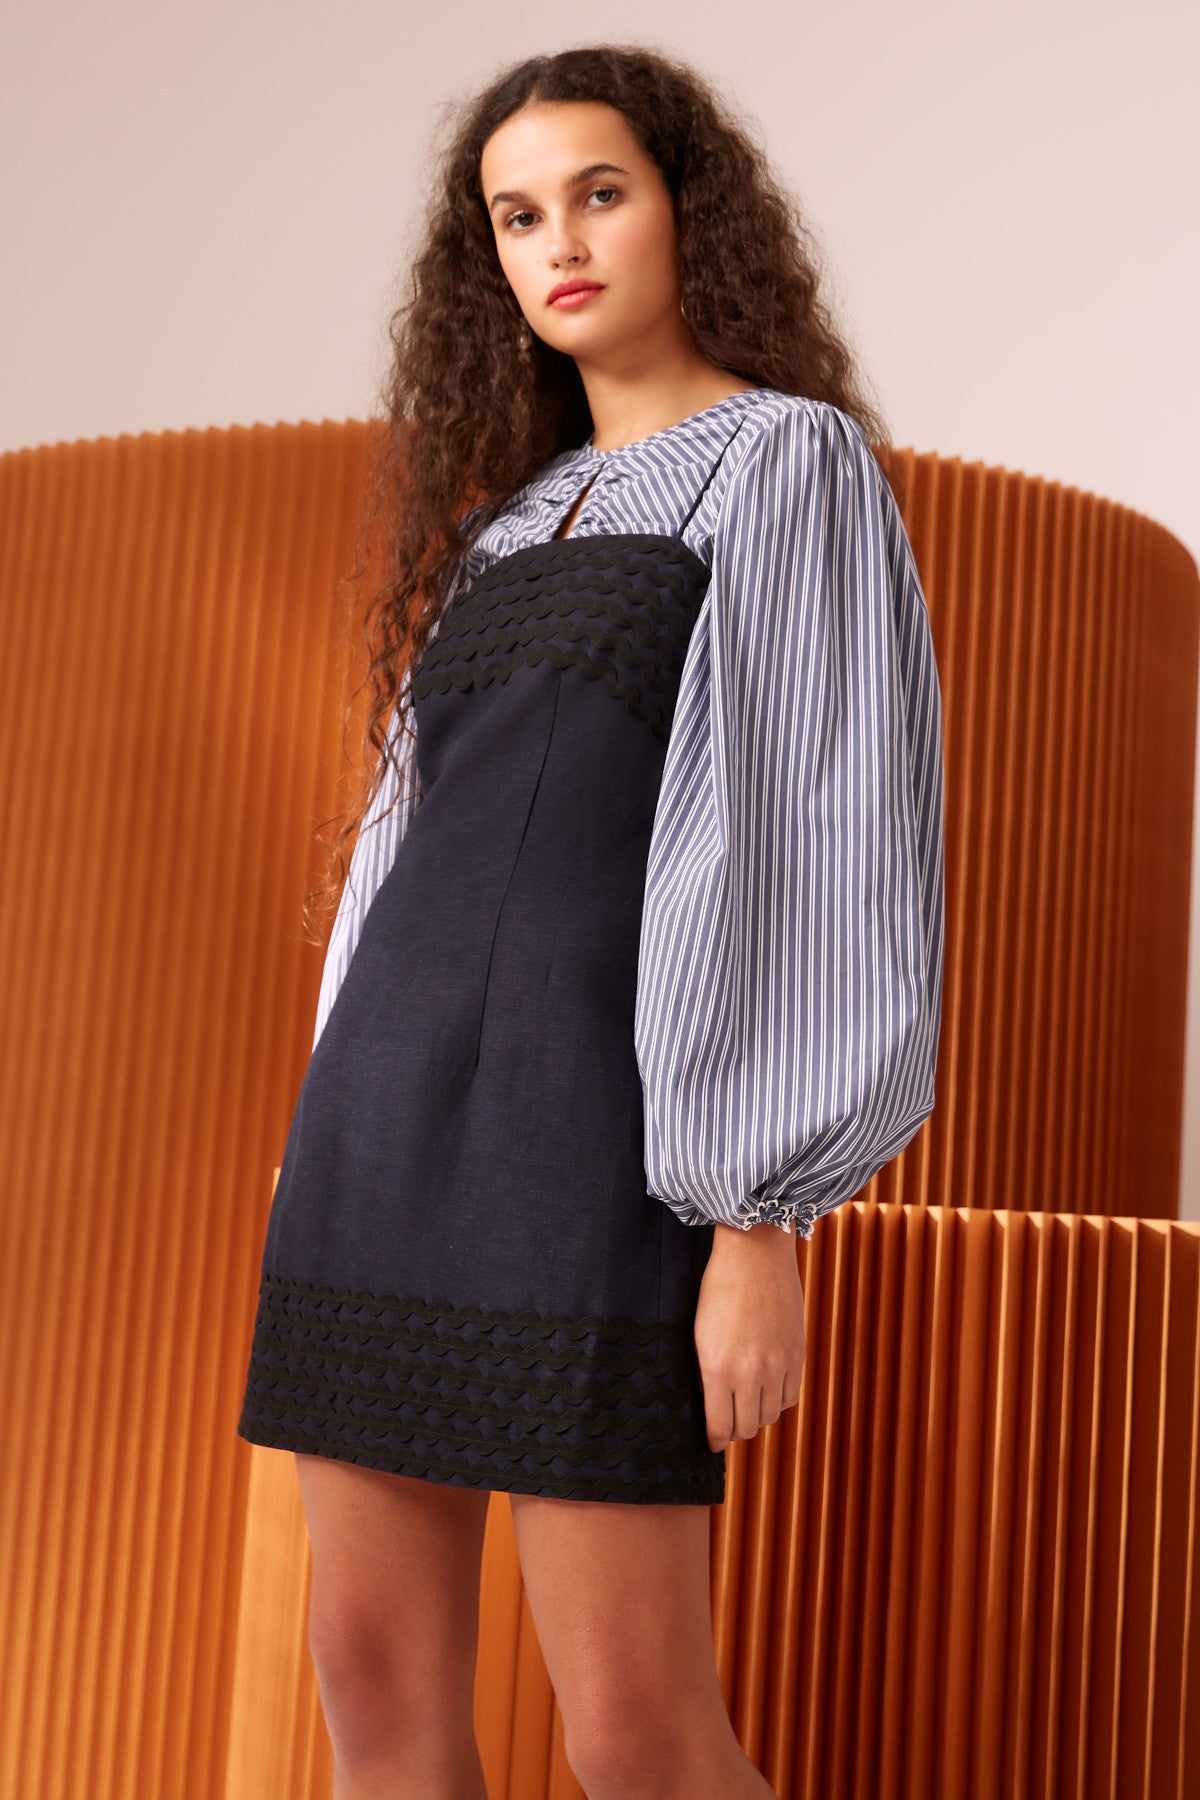 INCISE SHORT SLEEVE DRESS navy